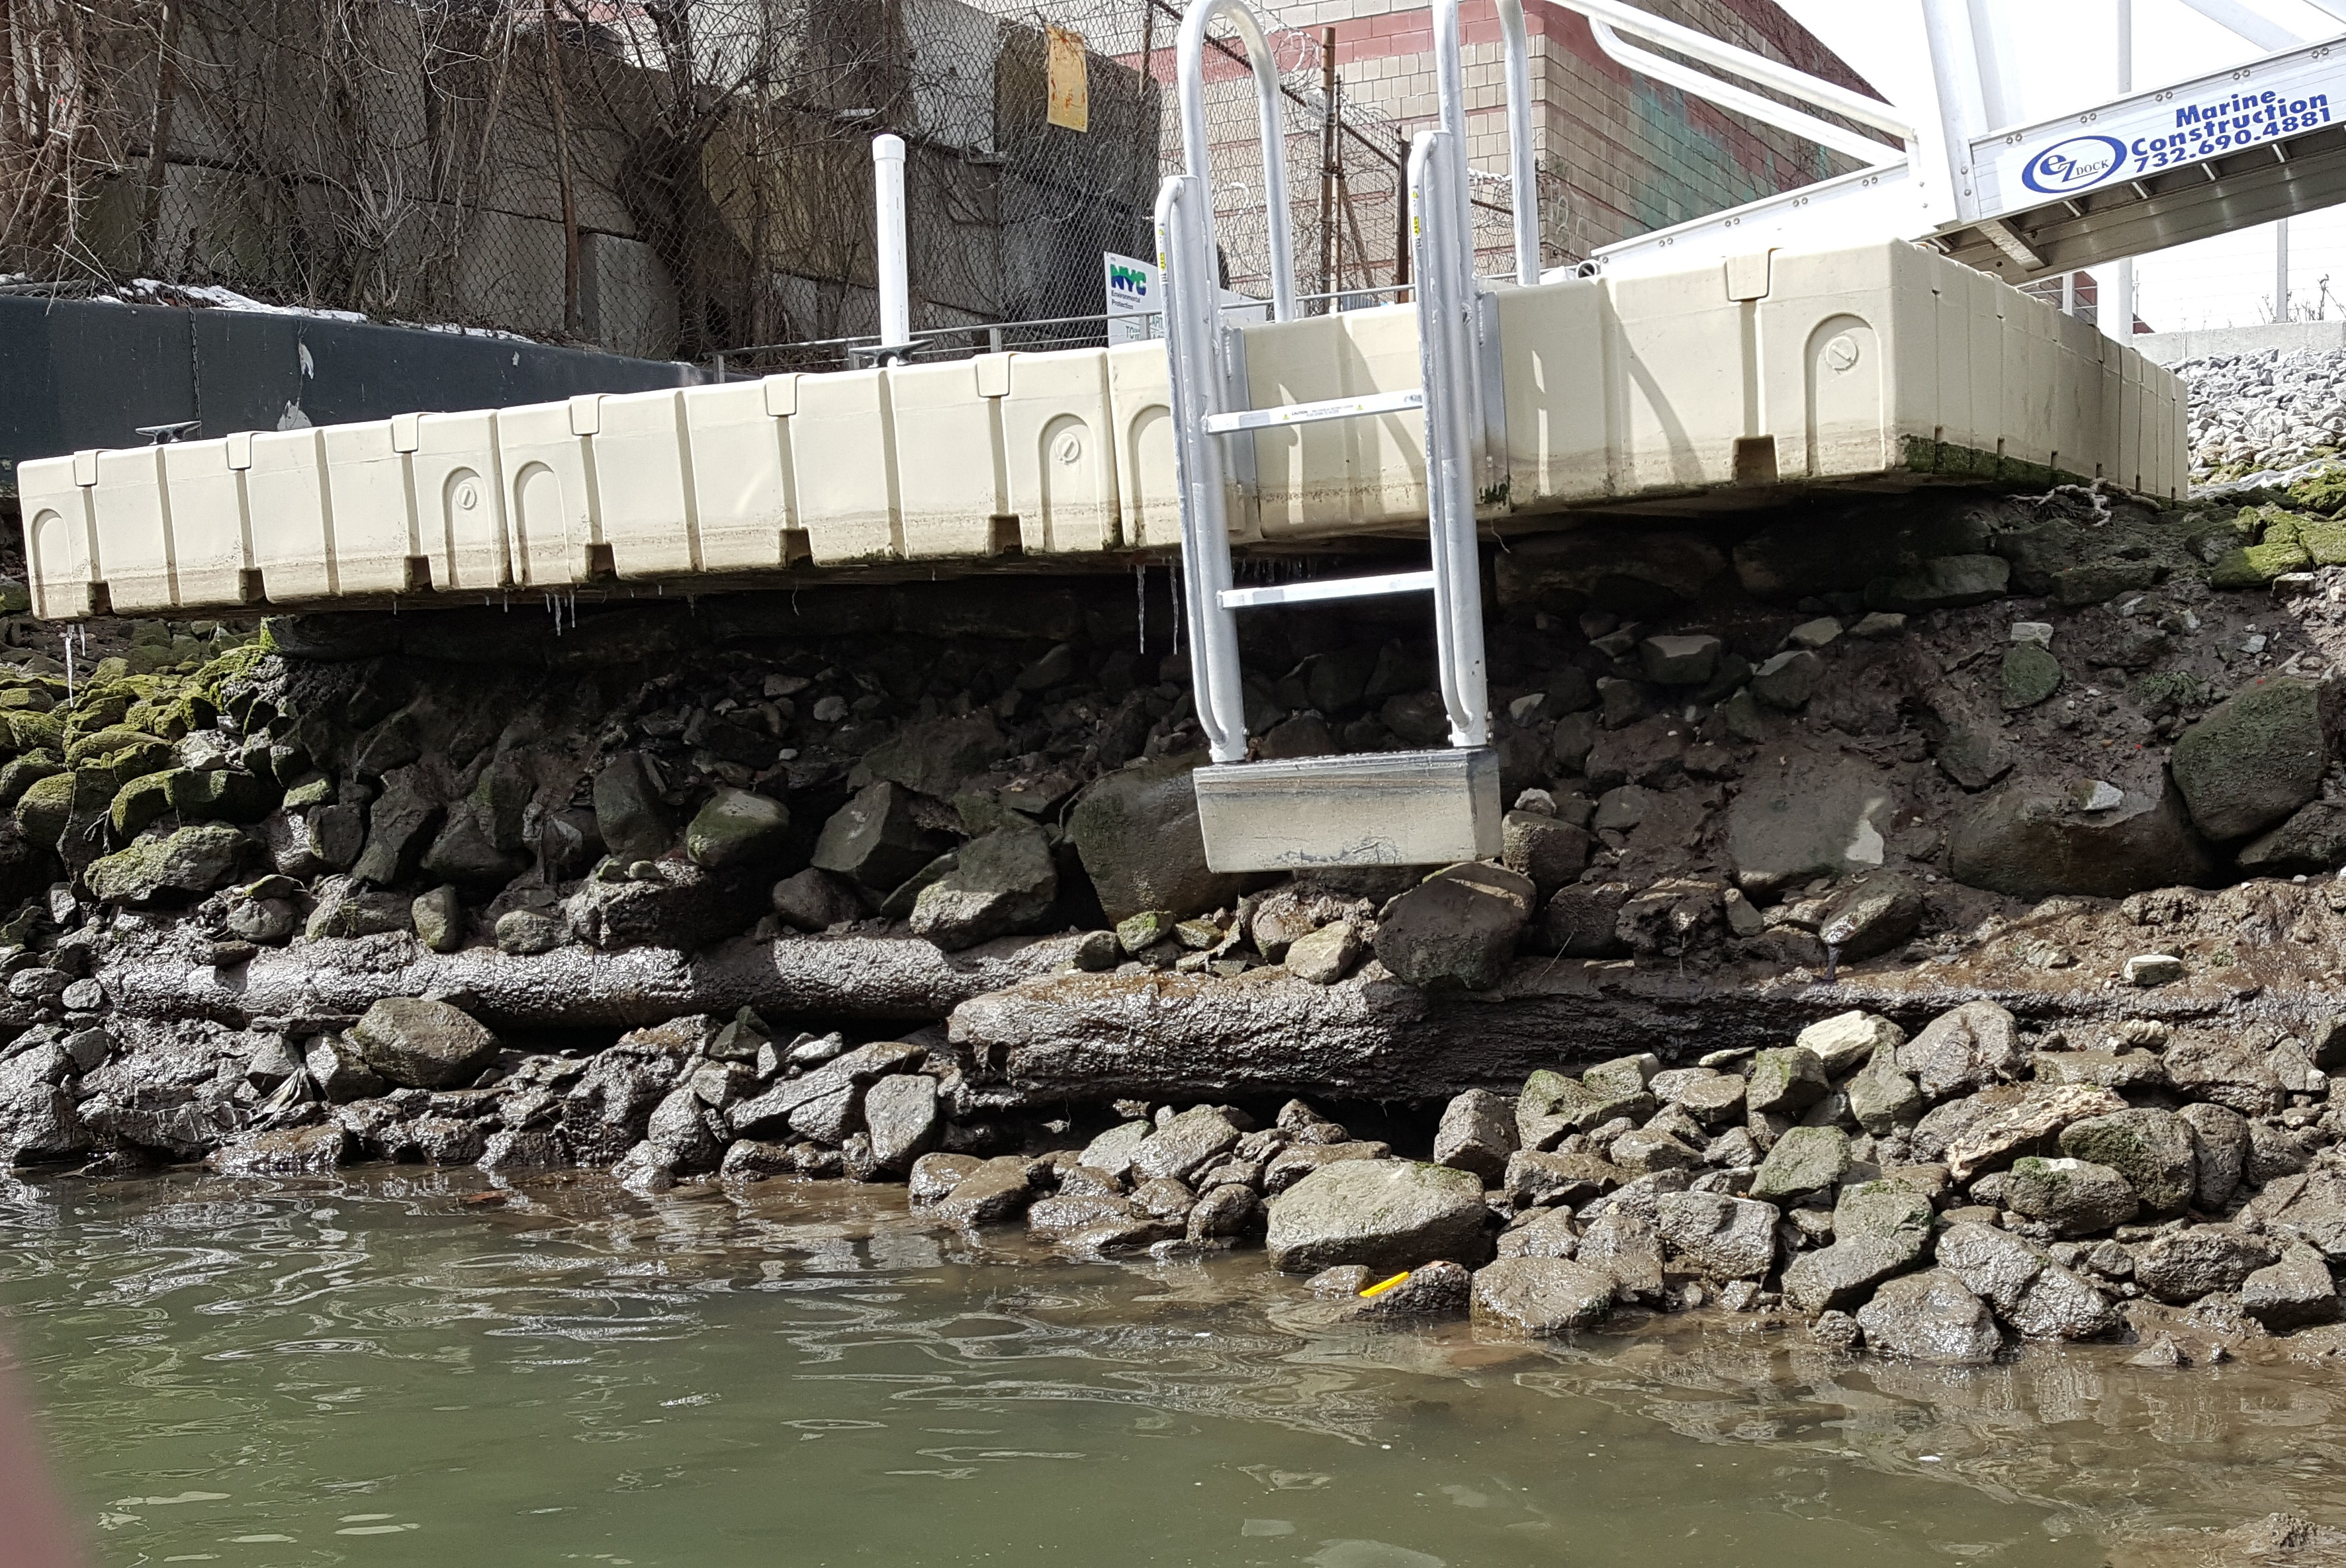 Dock at Low Tide May be Difficult to Use due to Ladder Design